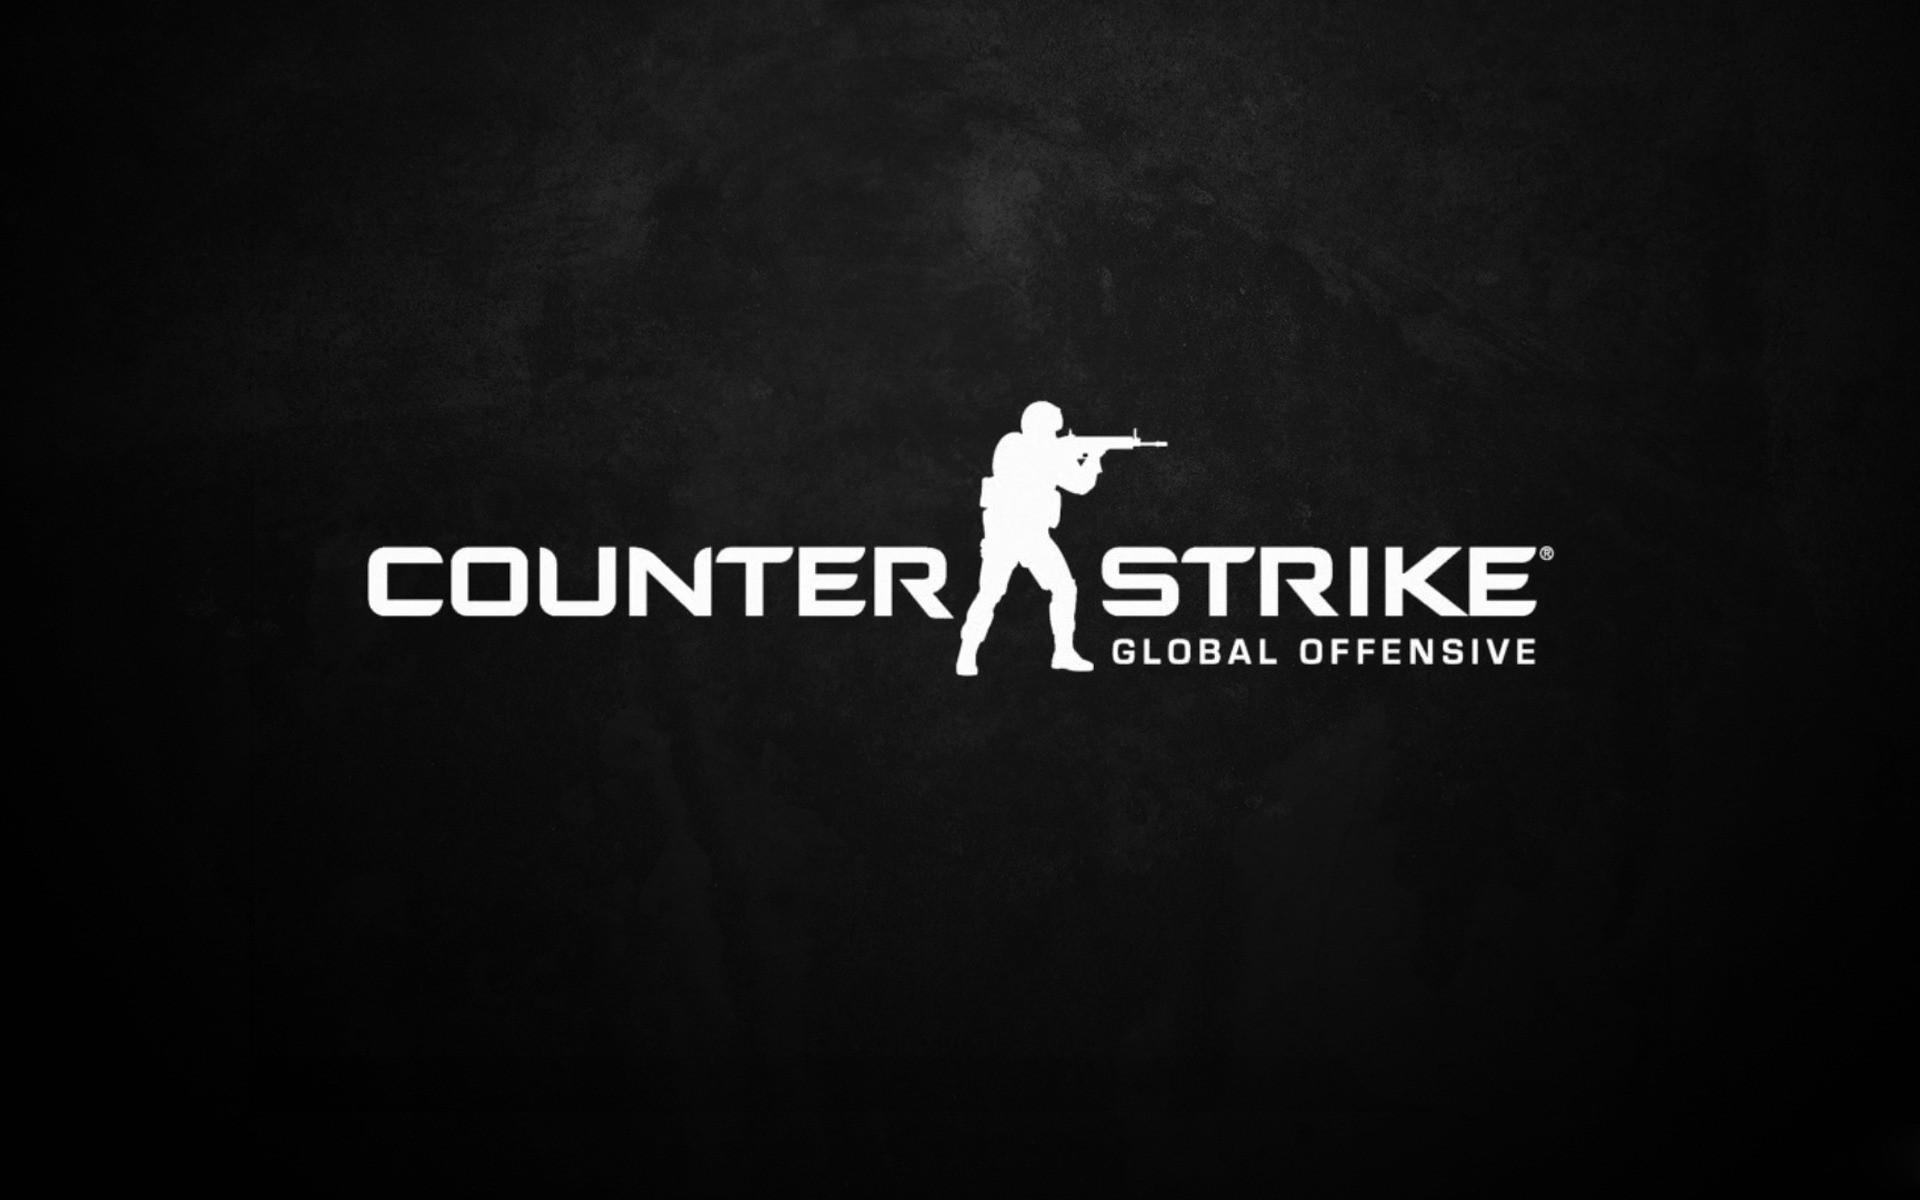 Counter-Strike логотип